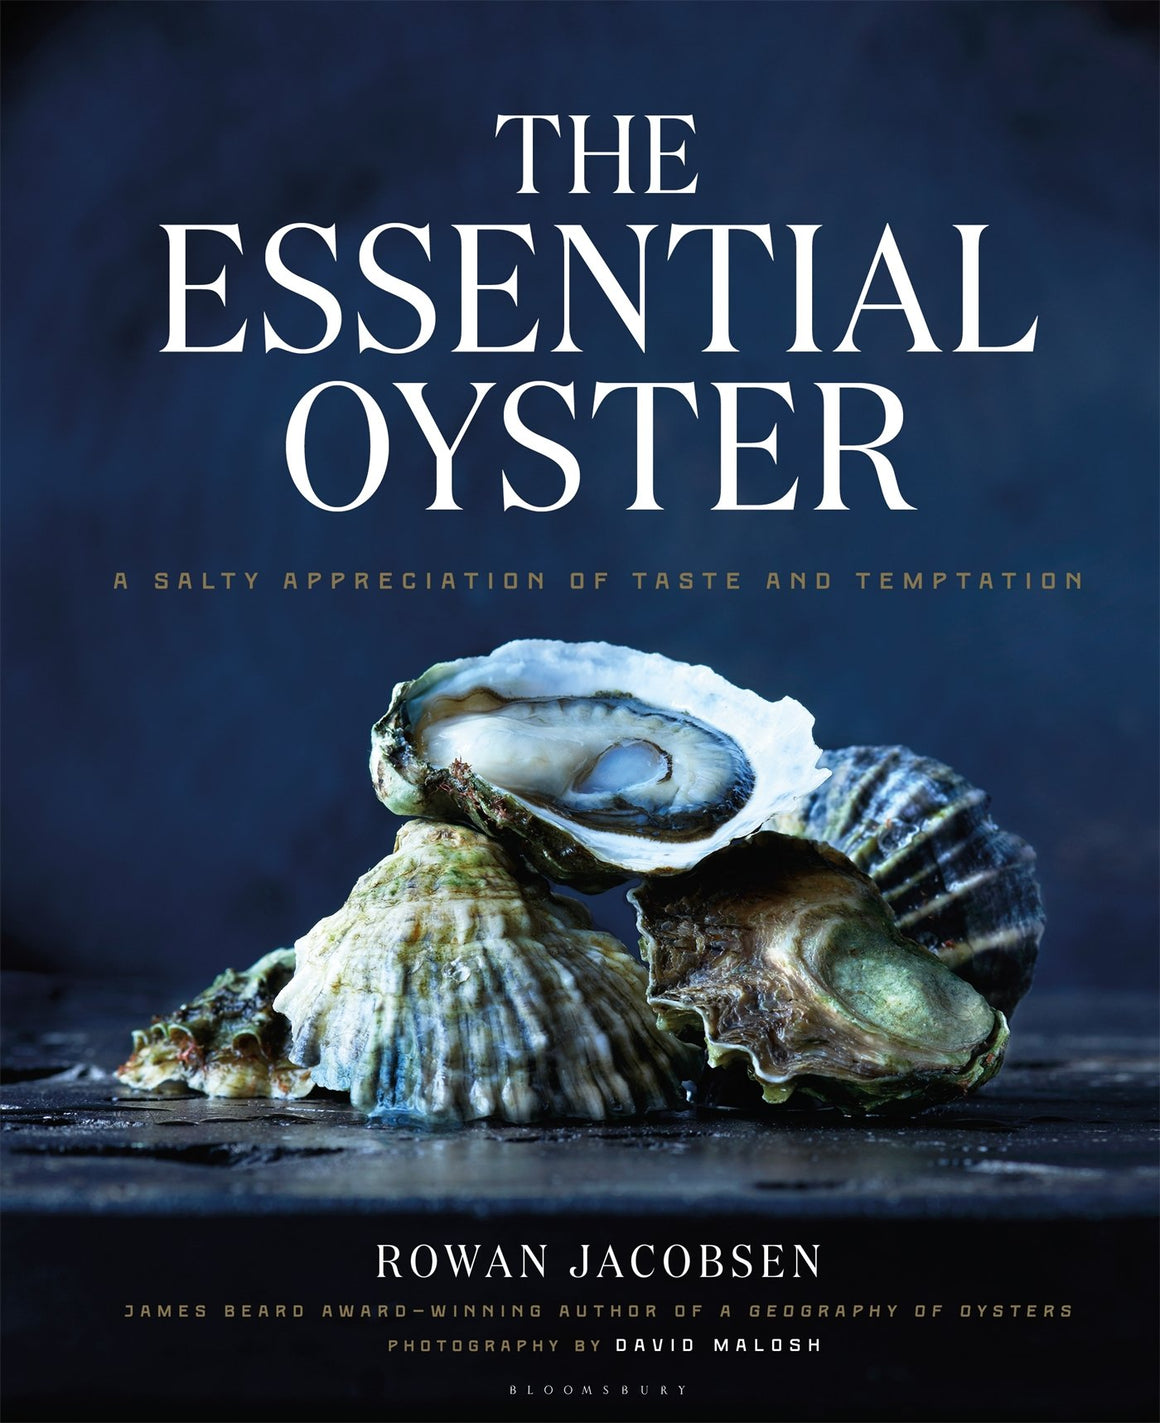 Rowan Jacobsen. The Essential Oyster: A Salty Appreciation of Taste and Temptation.